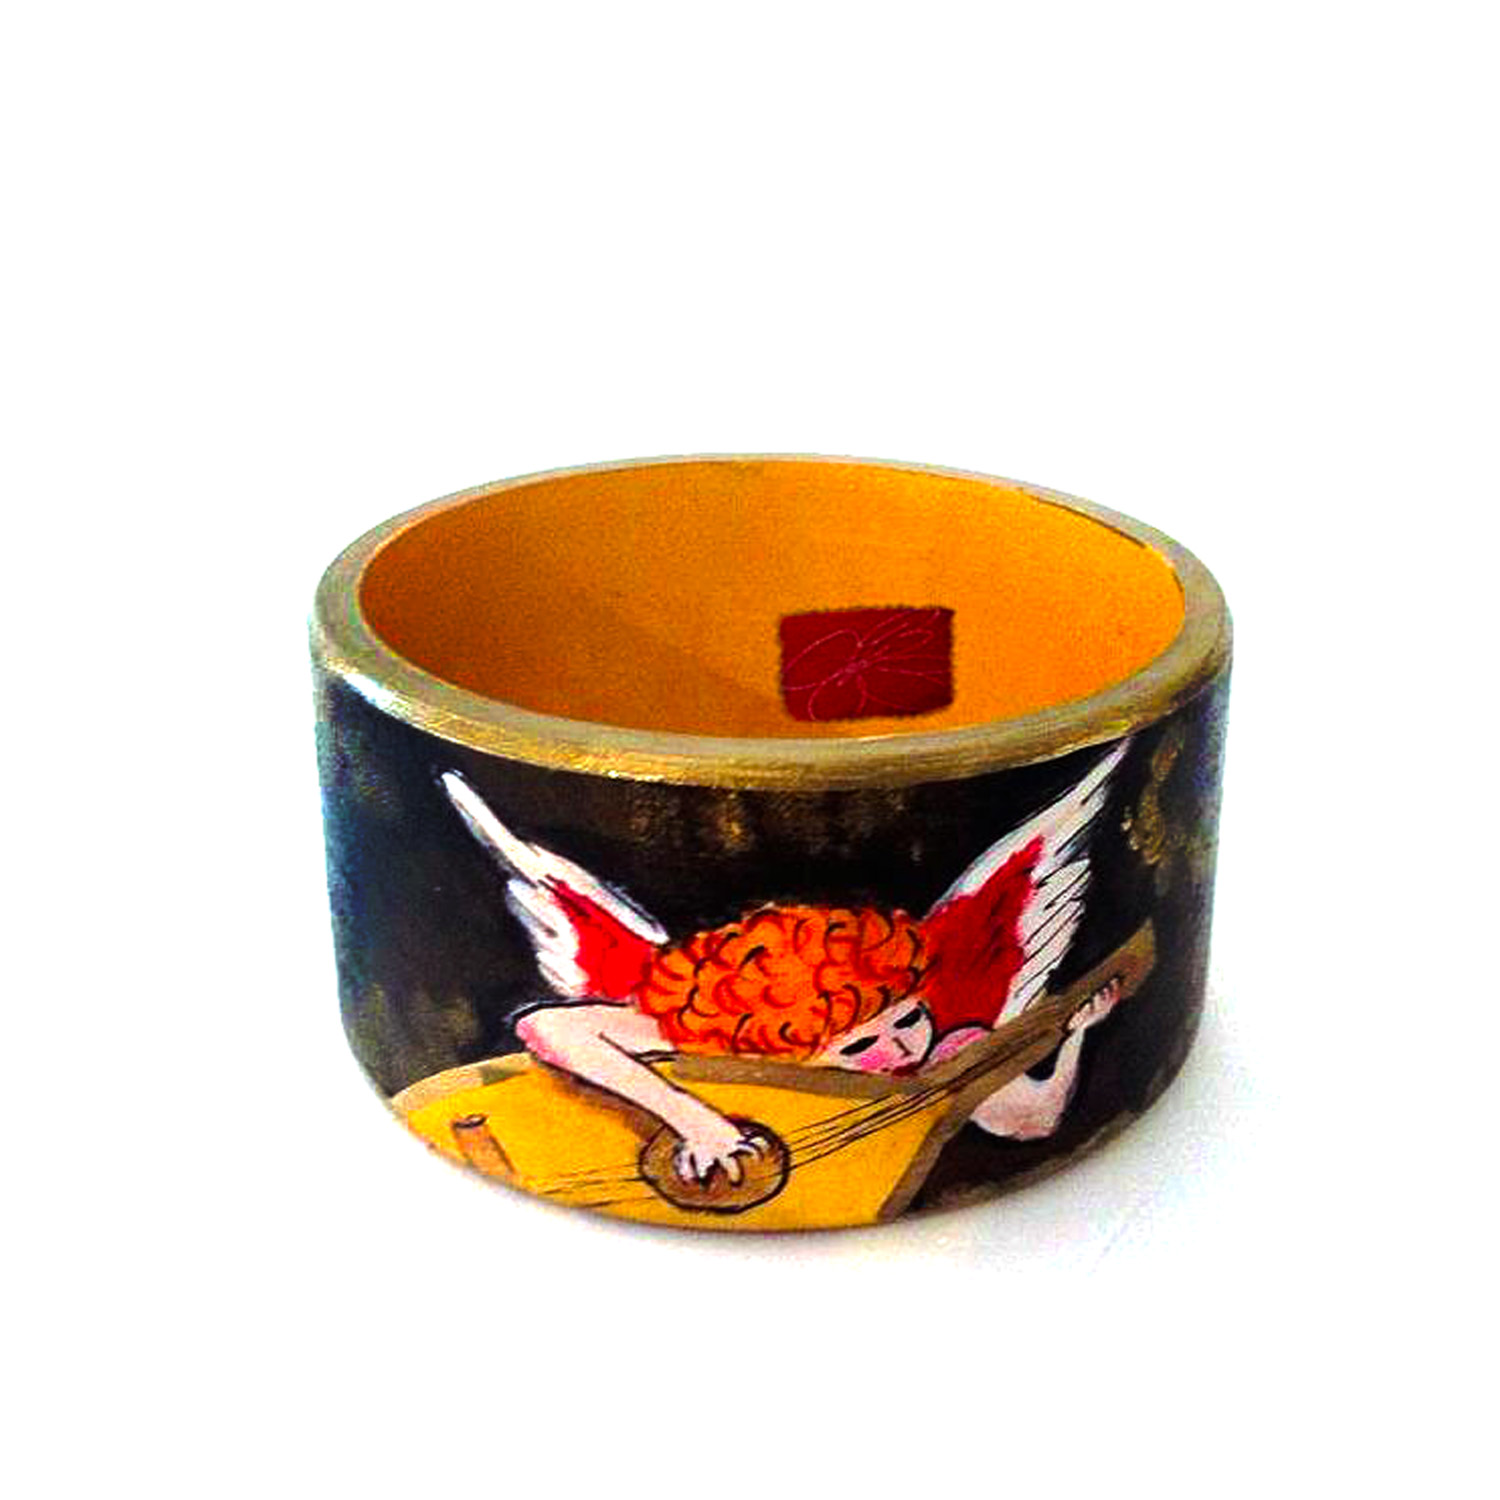 Hand-painted bangle - Musician Angie by Rosso Fiorentino